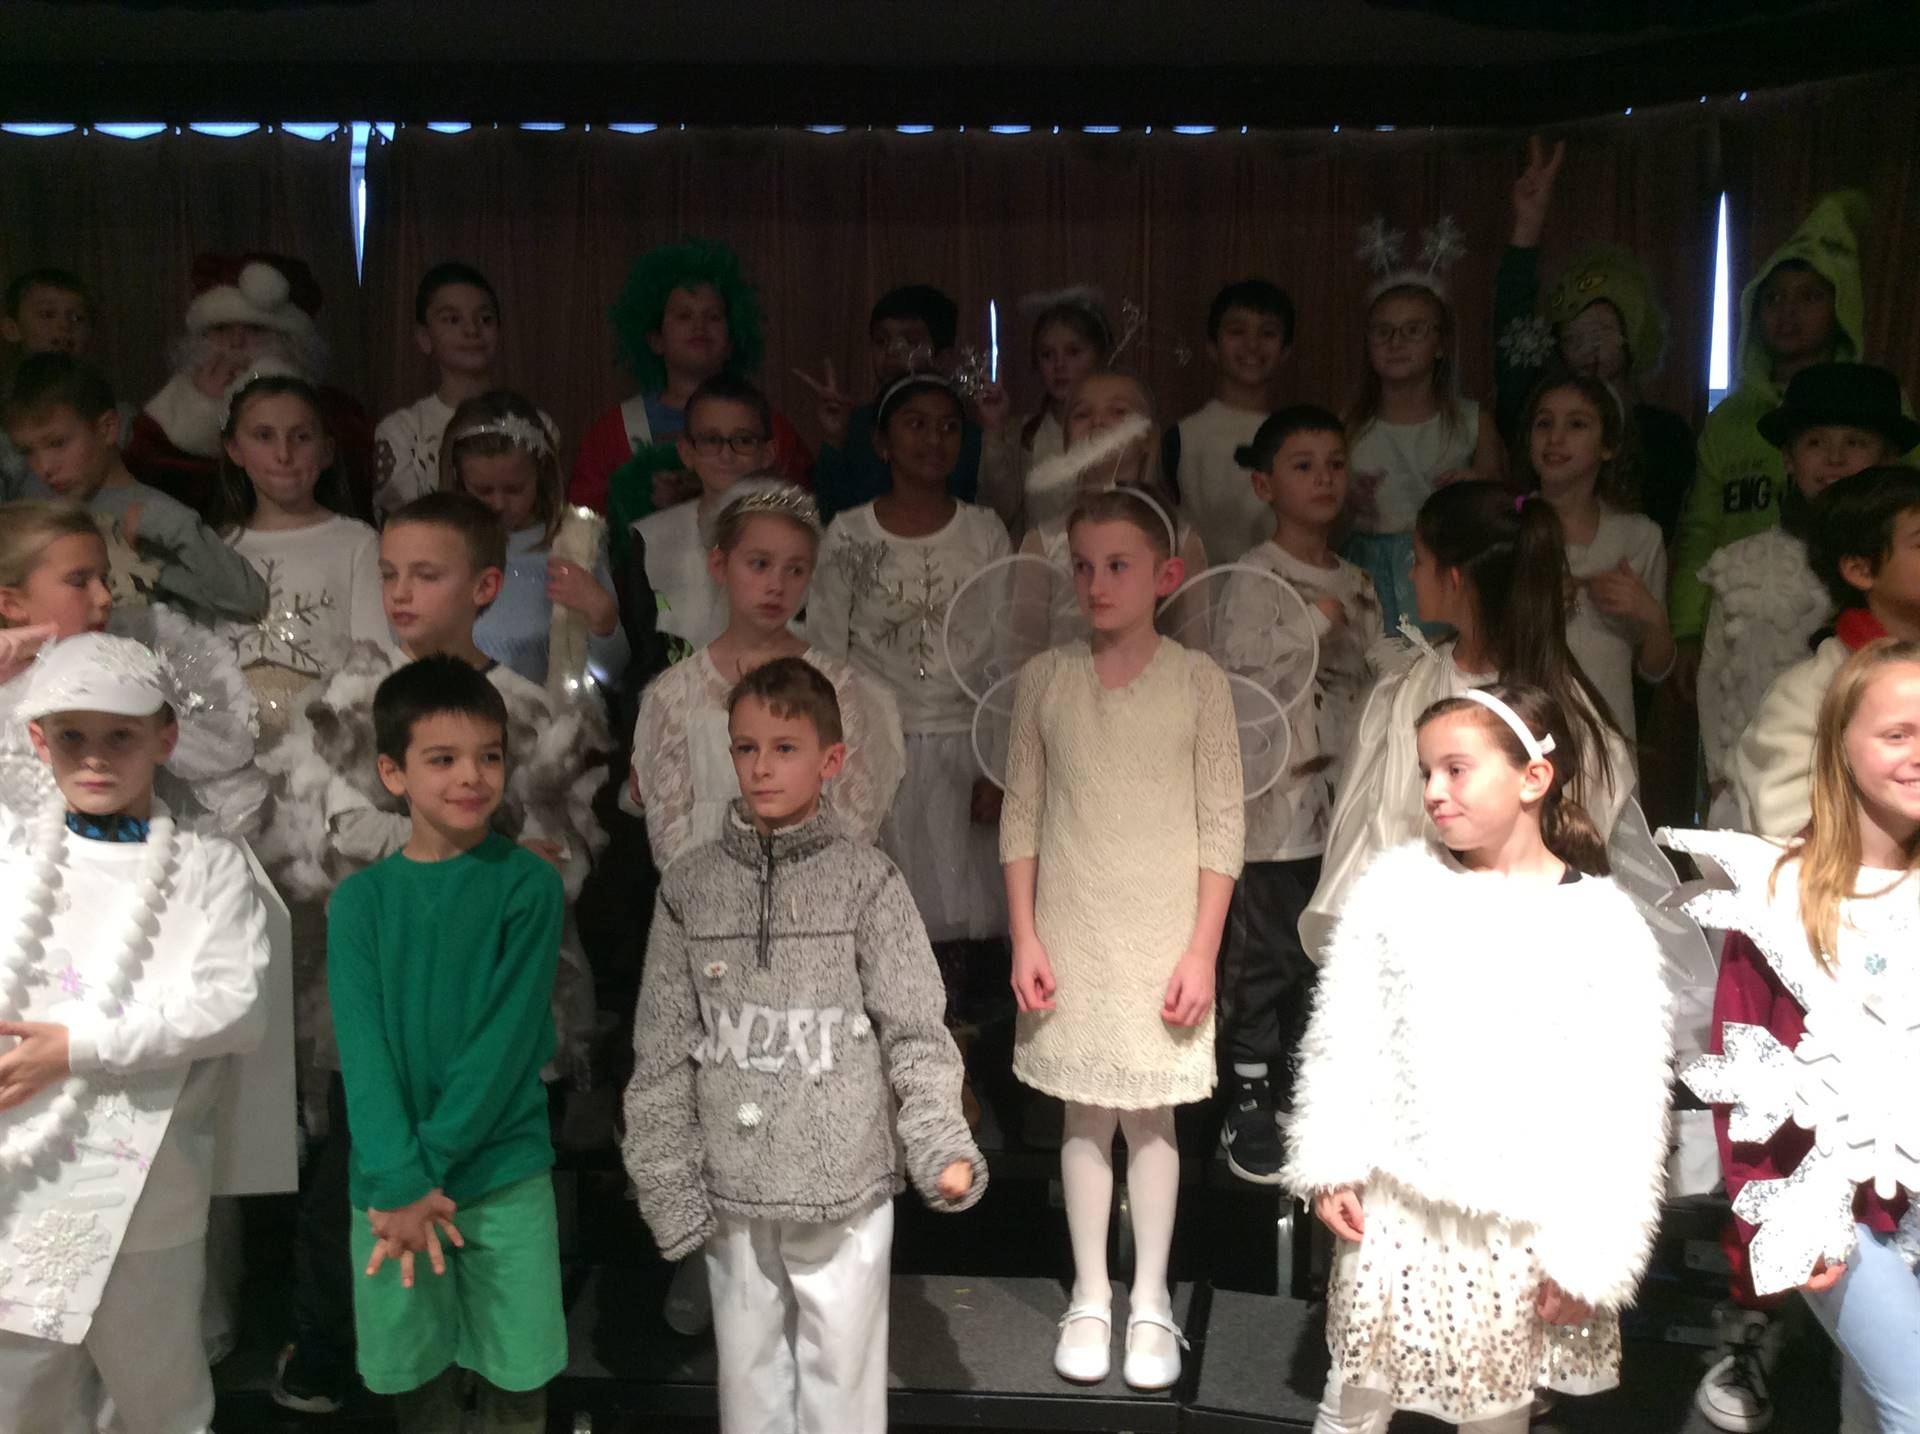 Third Grade Musical - Flakes; Post Performance